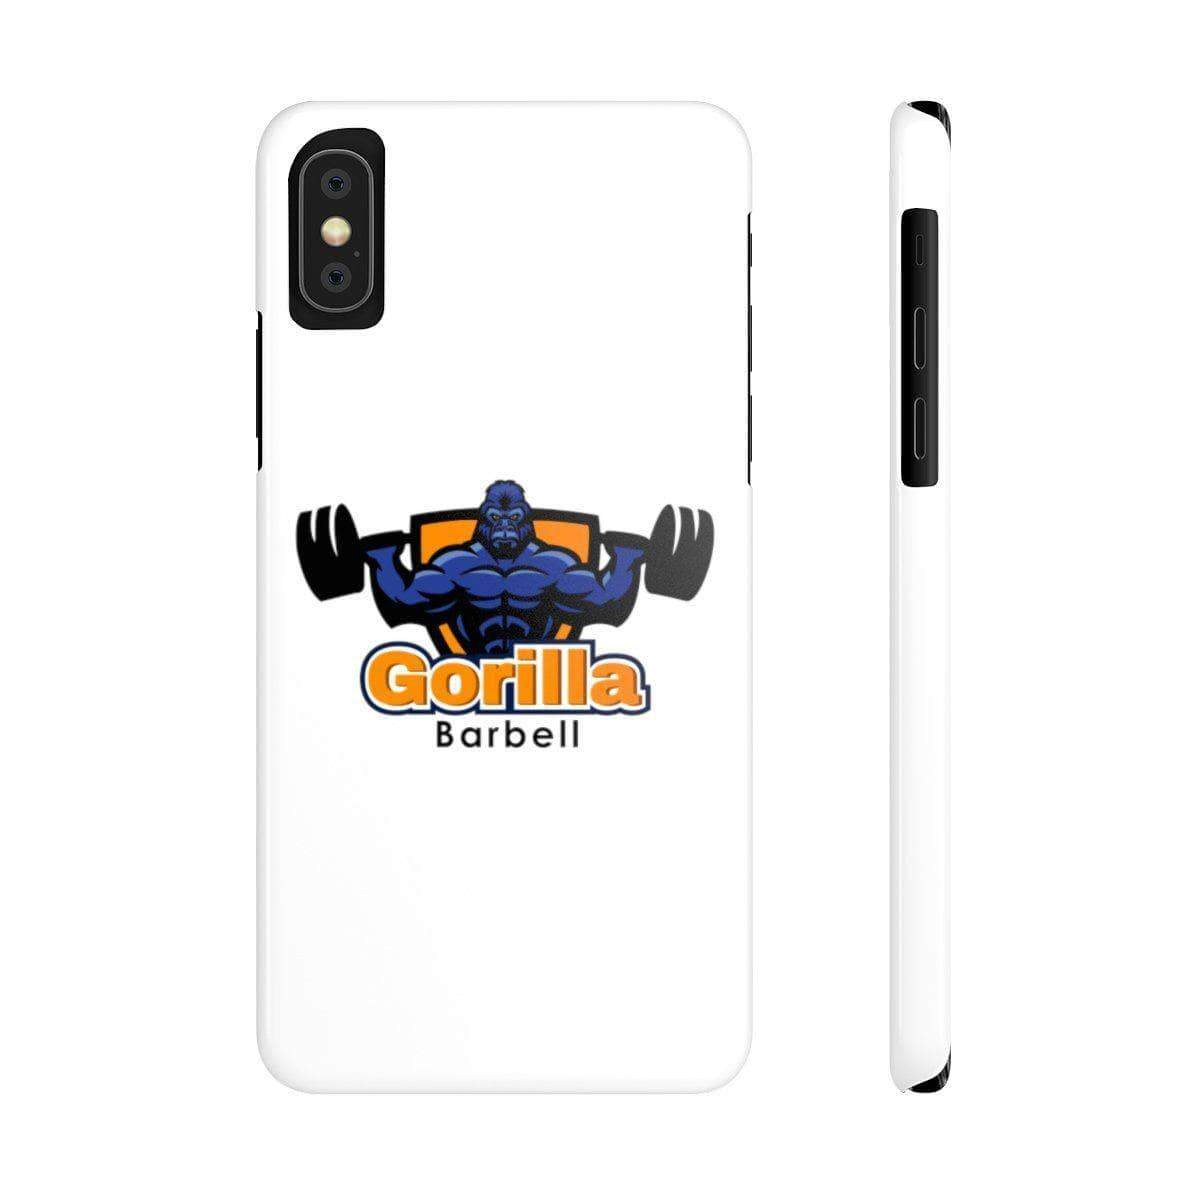 Phone Case iPhone XS Gorilla Barbell Phone Case